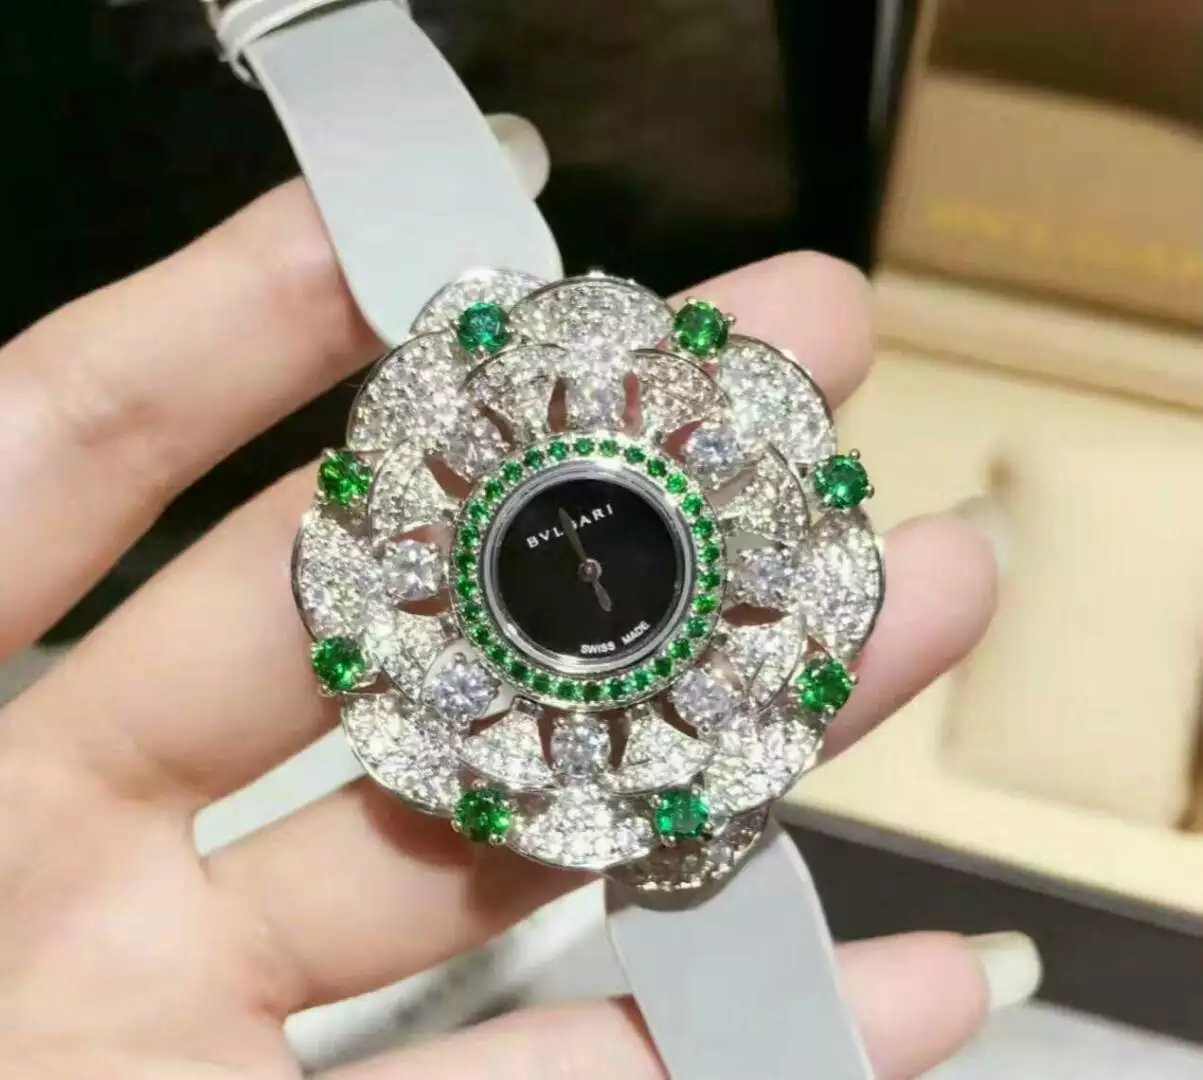 Bvlgari Watch 179